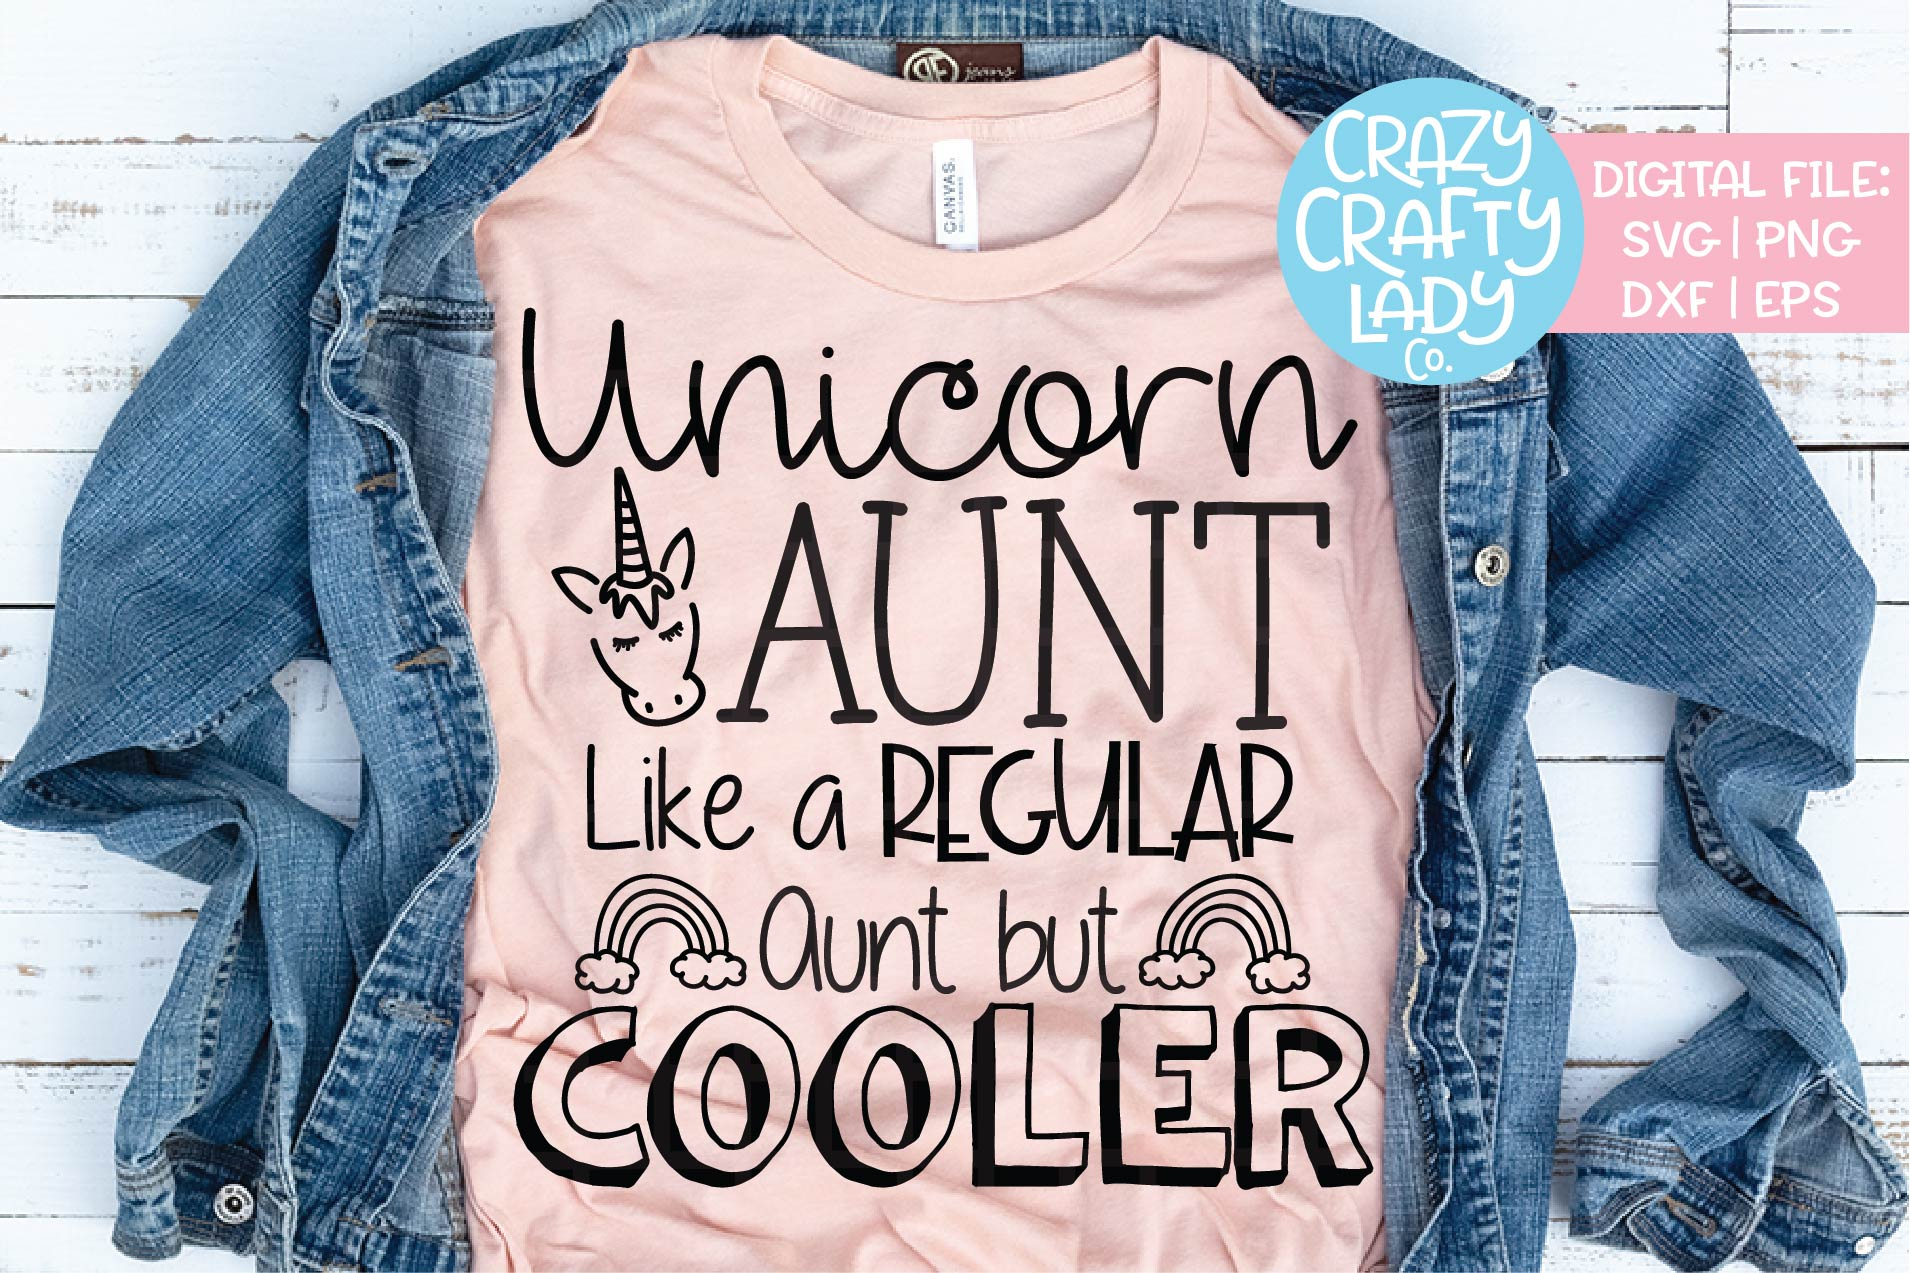 Aunt in jeans clipart clip art freeuse library Unicorn Aunt SVG DXF EPS PNG Cut File clip art freeuse library